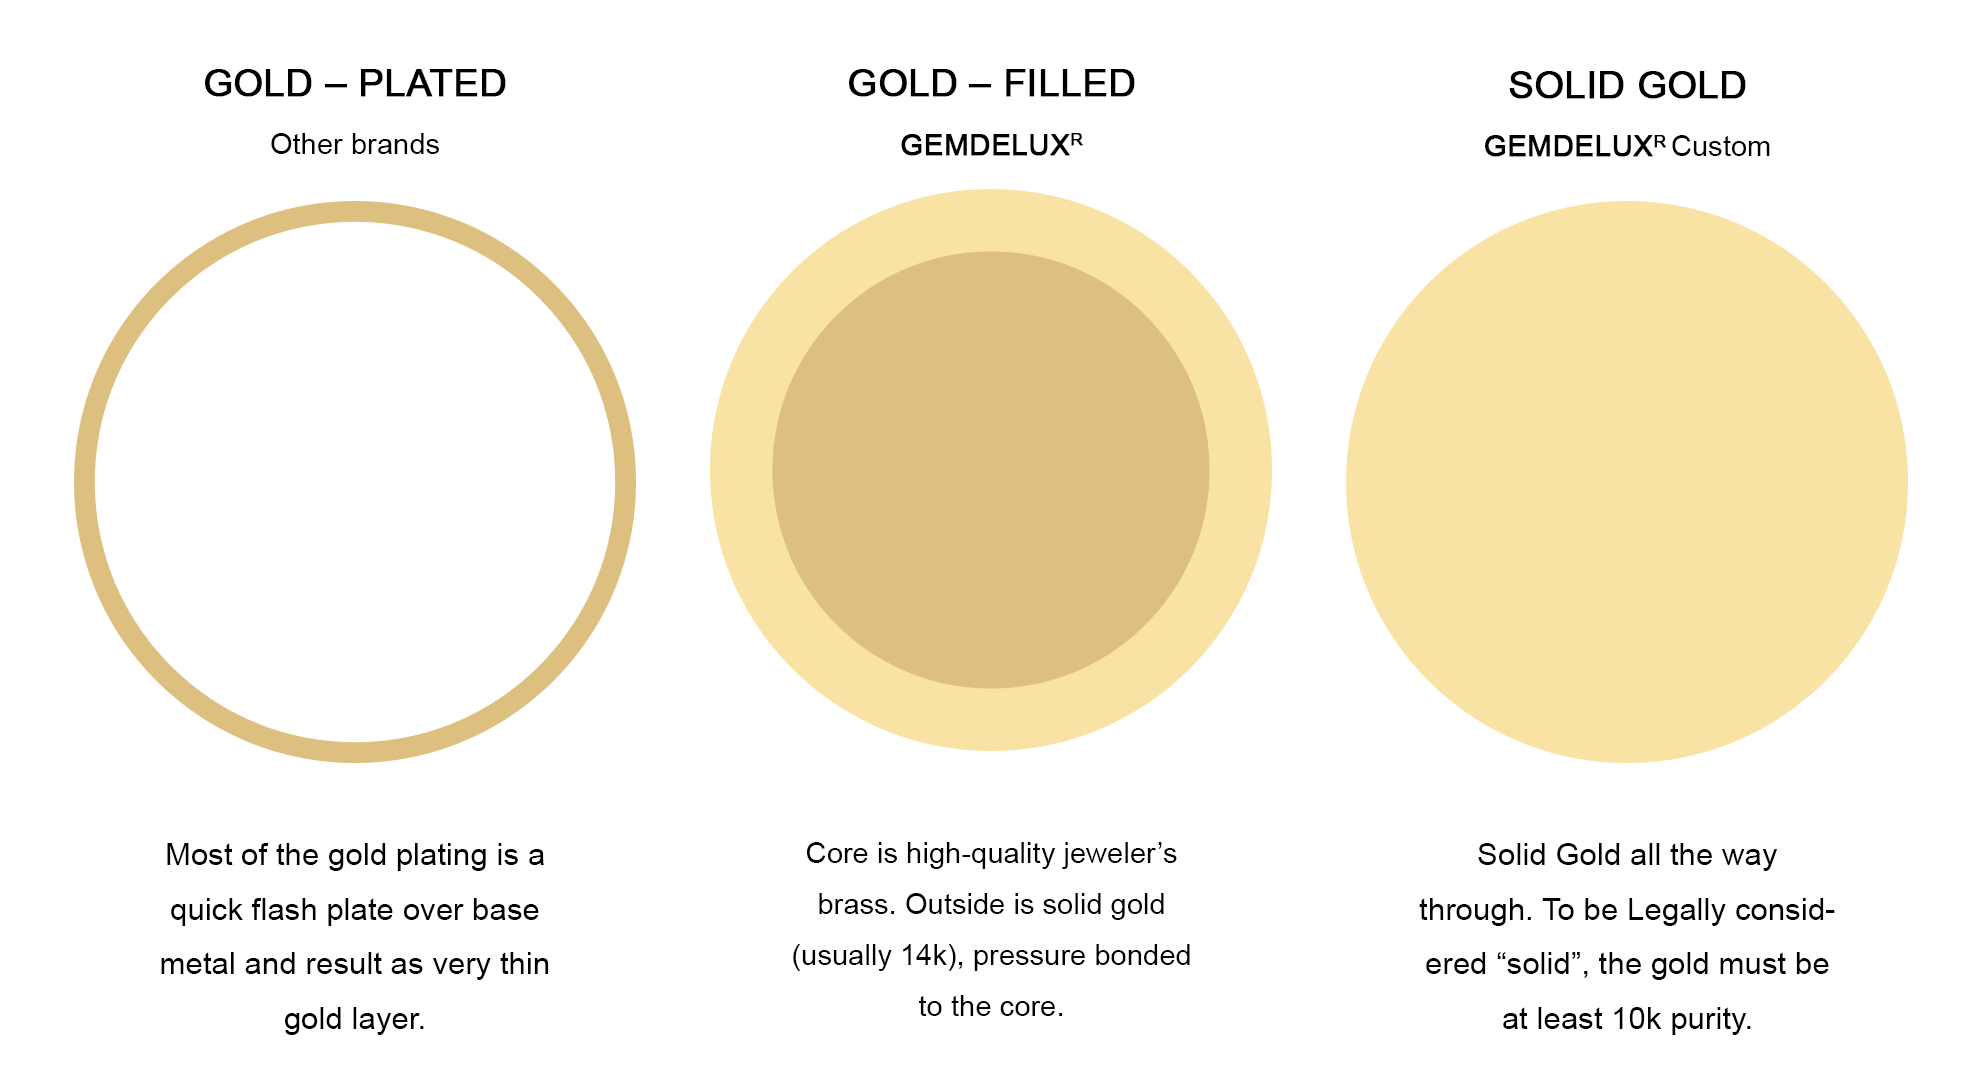 Difference Between Solid Gold, Gold Filled, and Gold Plated